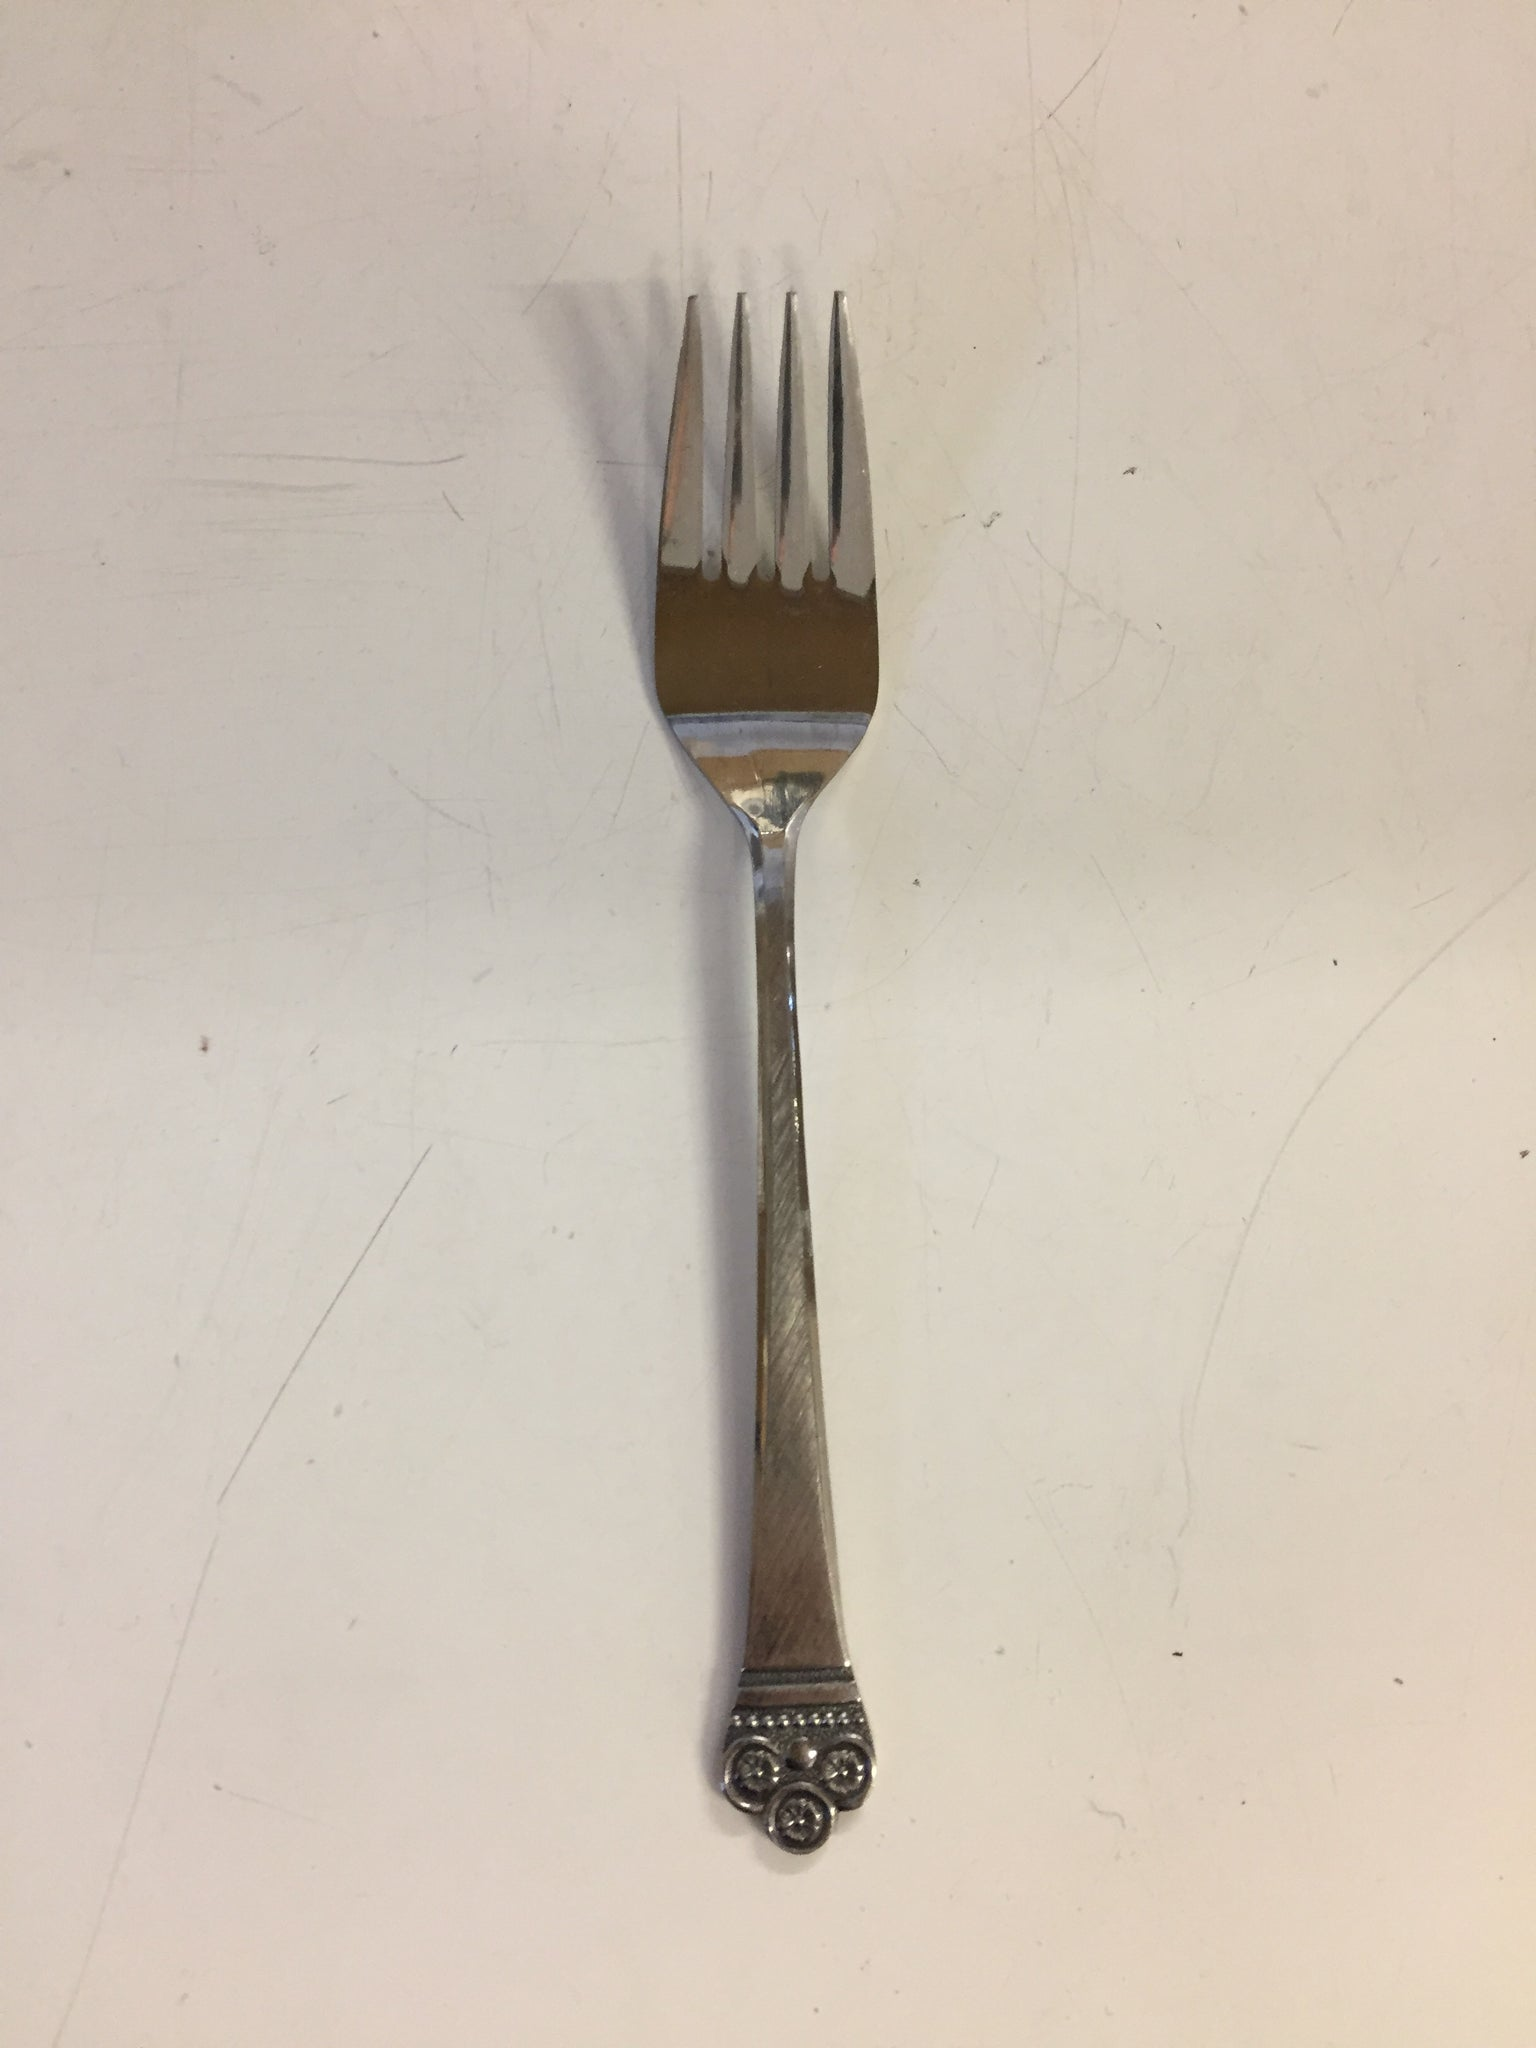 Vintage National Stainless Salad Fork Japan Flatware Mid Century